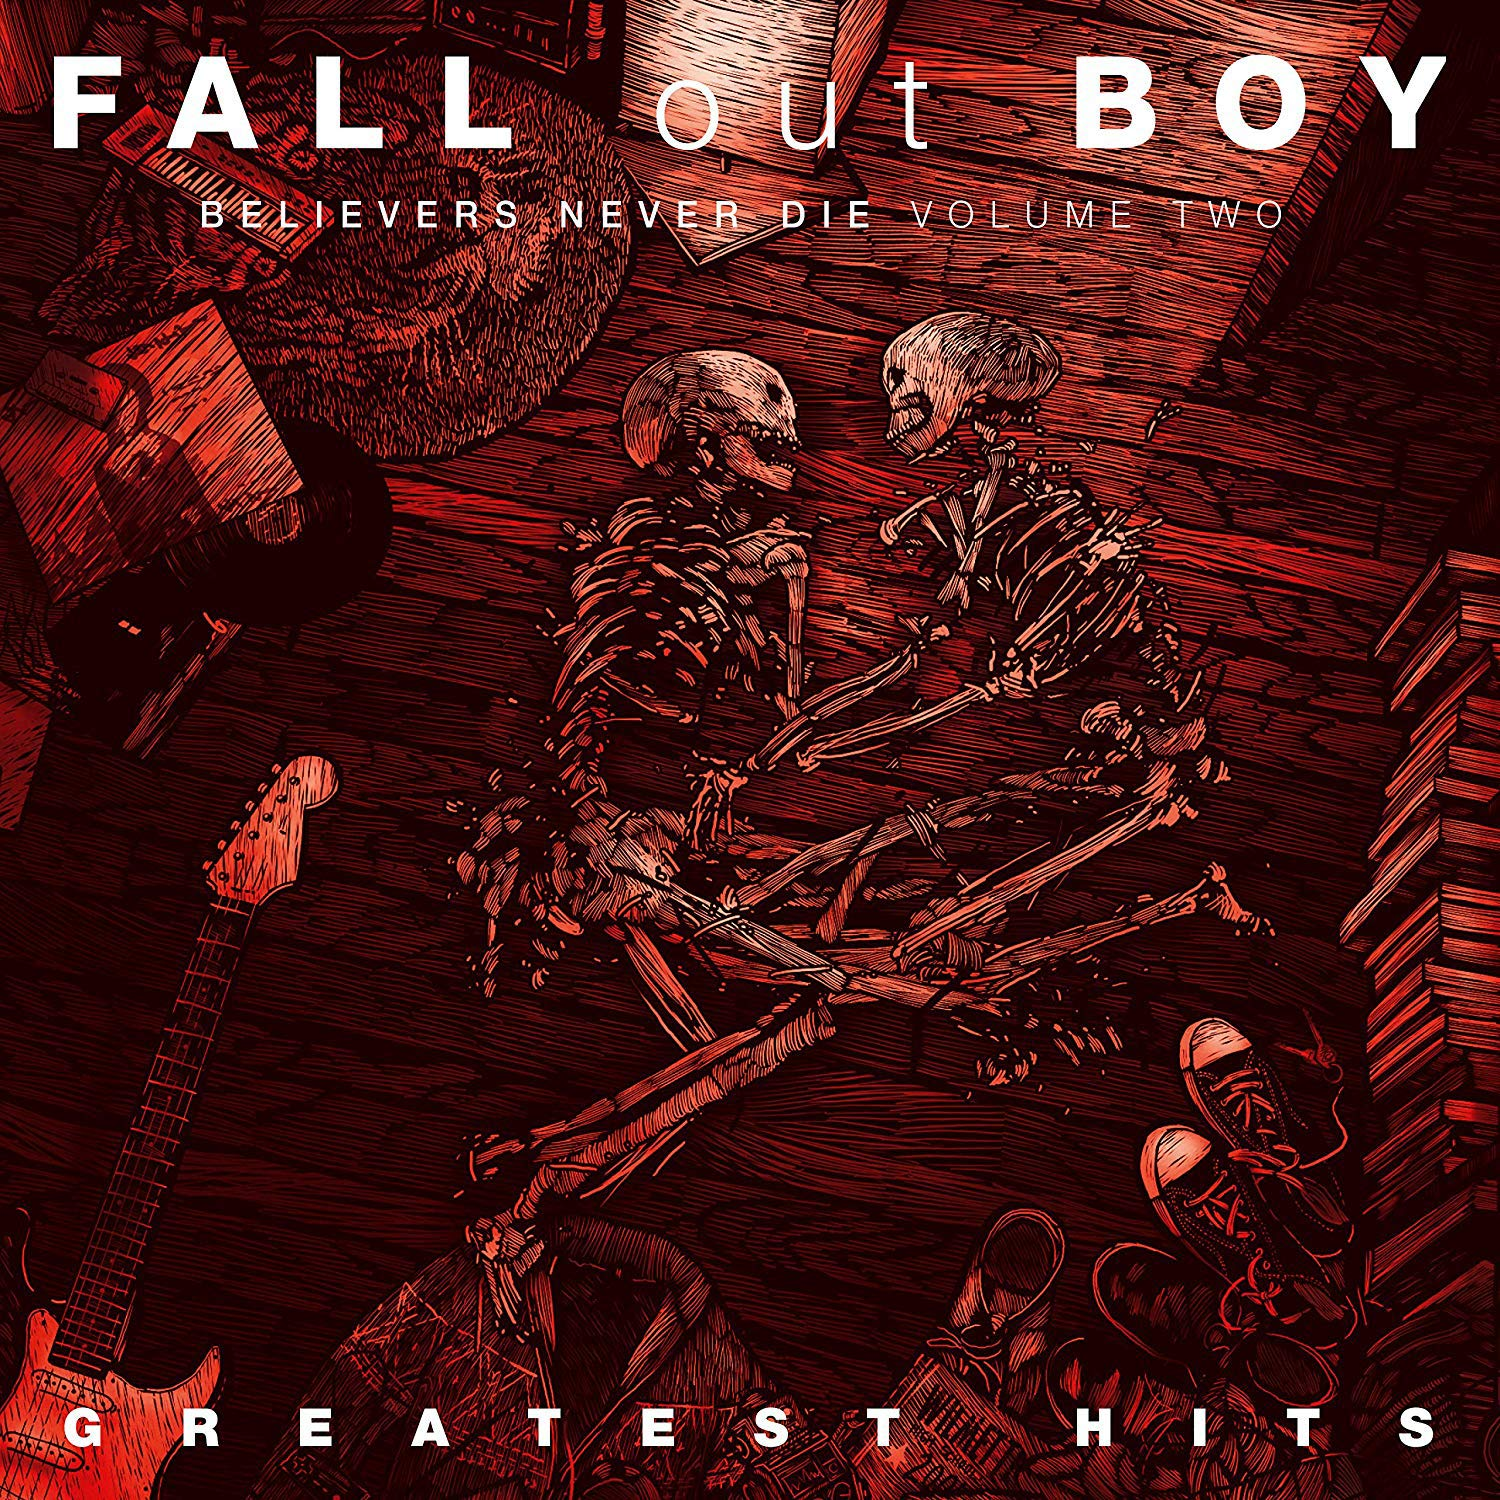 CD Shop - FALL OUT BOY GREATEST HITS: BELIEVERS NEVER DIE VOLUME 2